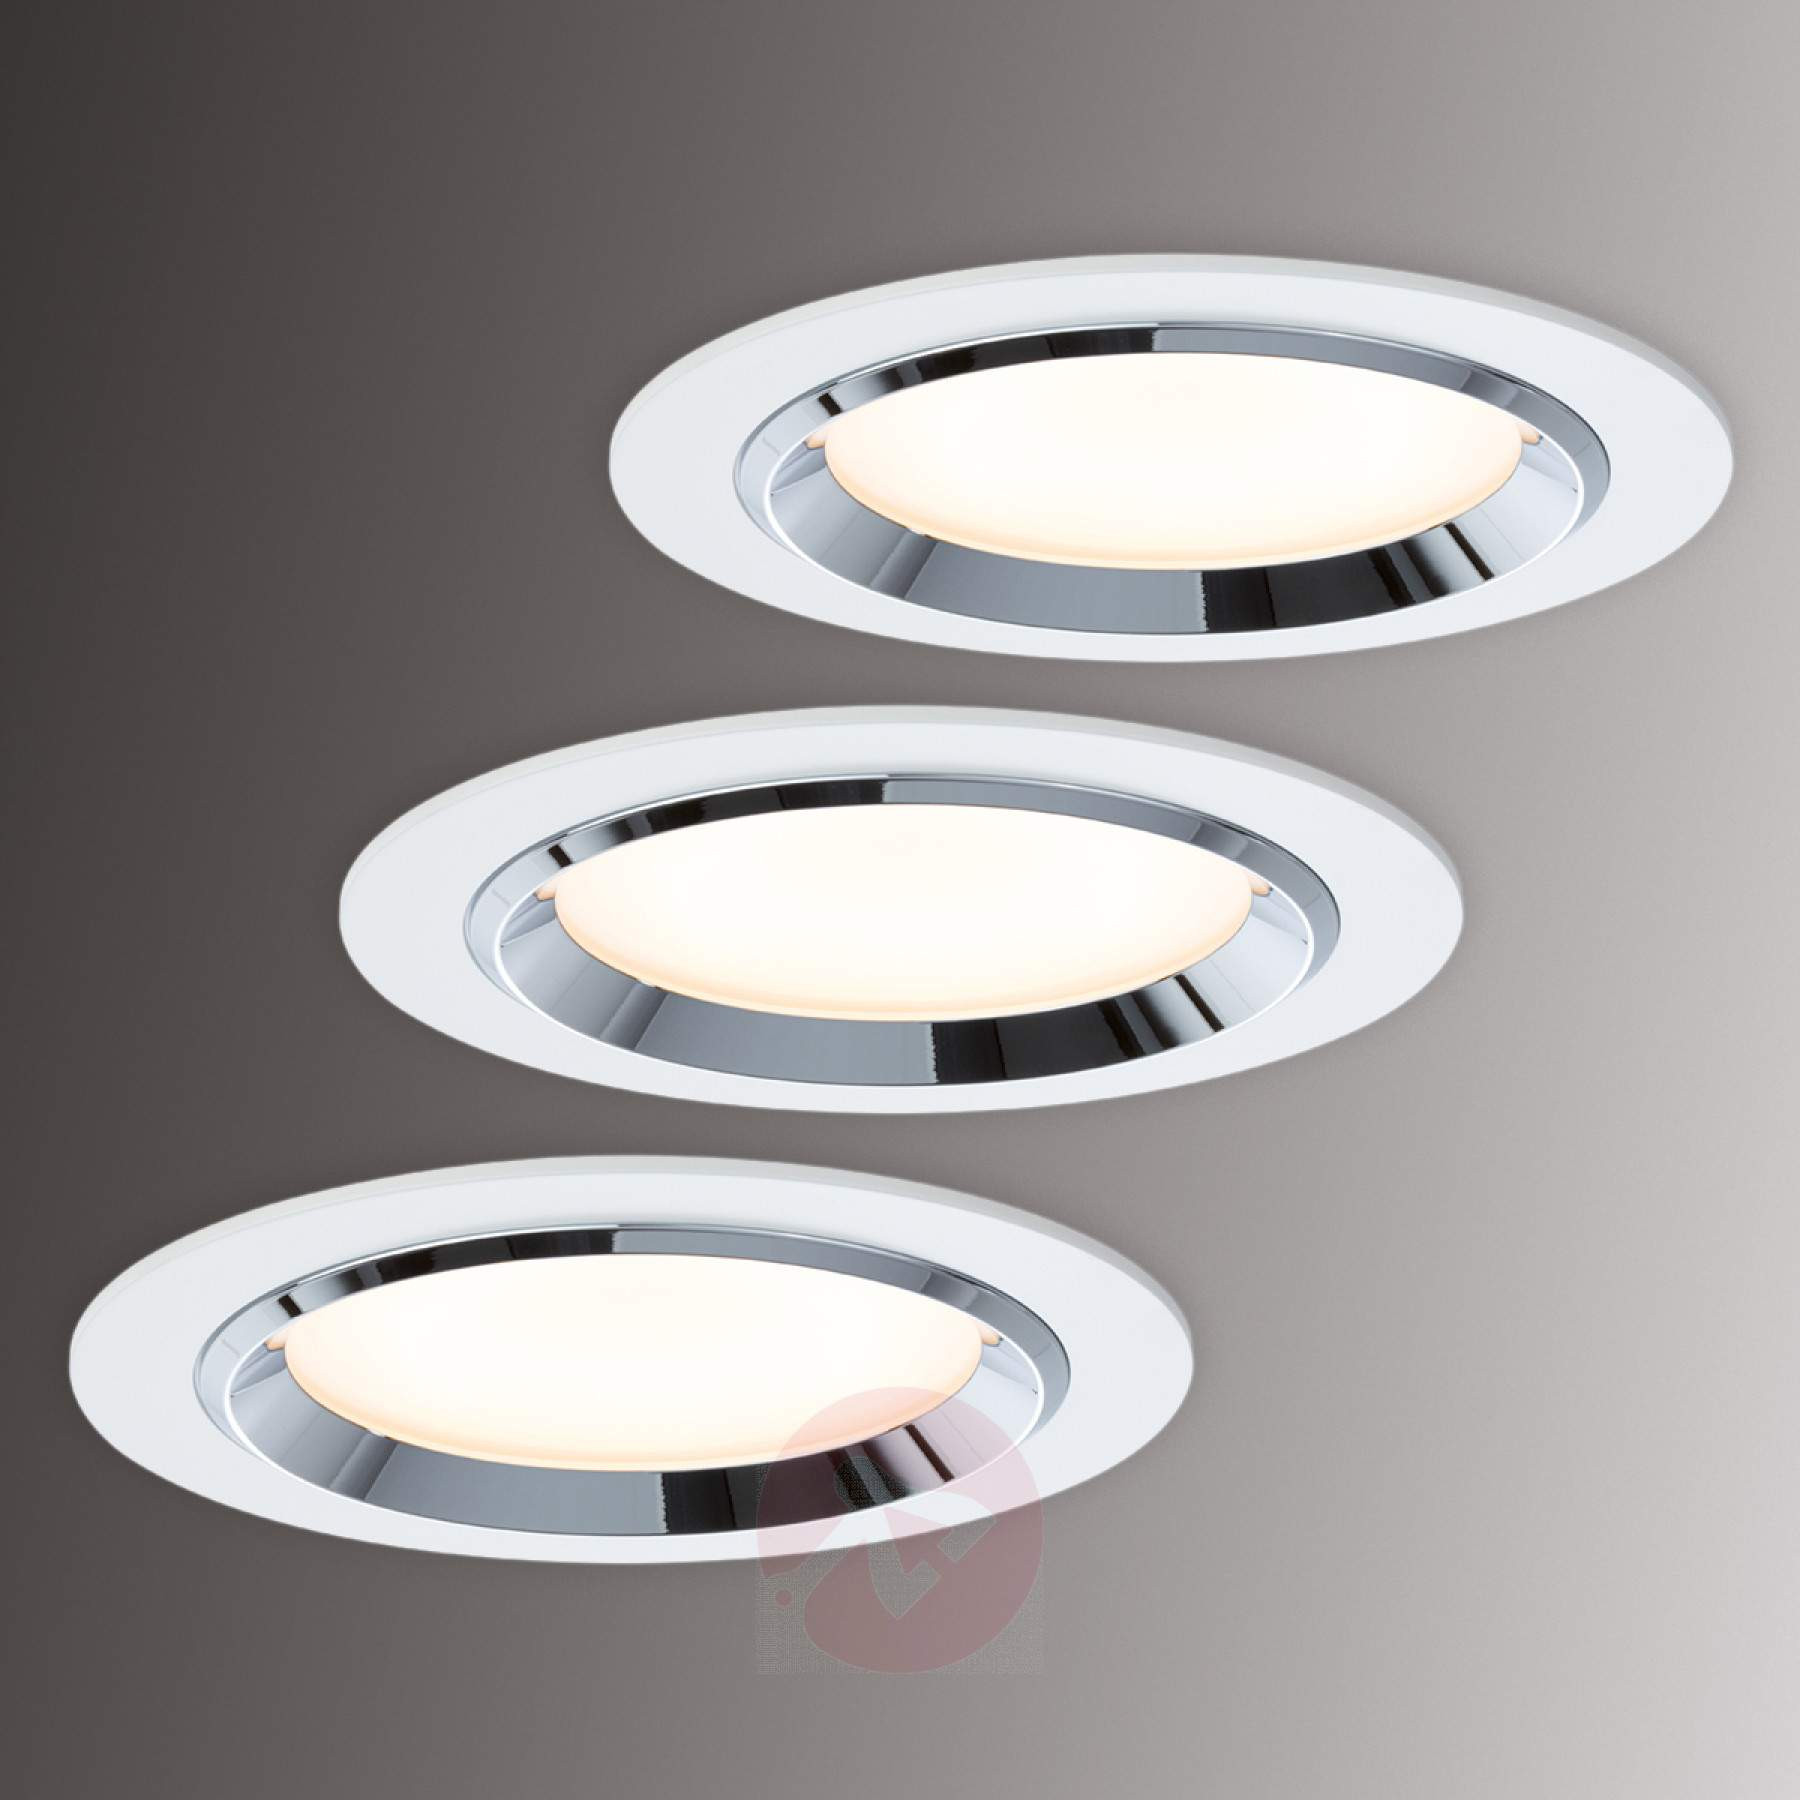 pra Set de 3 focos LED empotrables Premium Line Dot